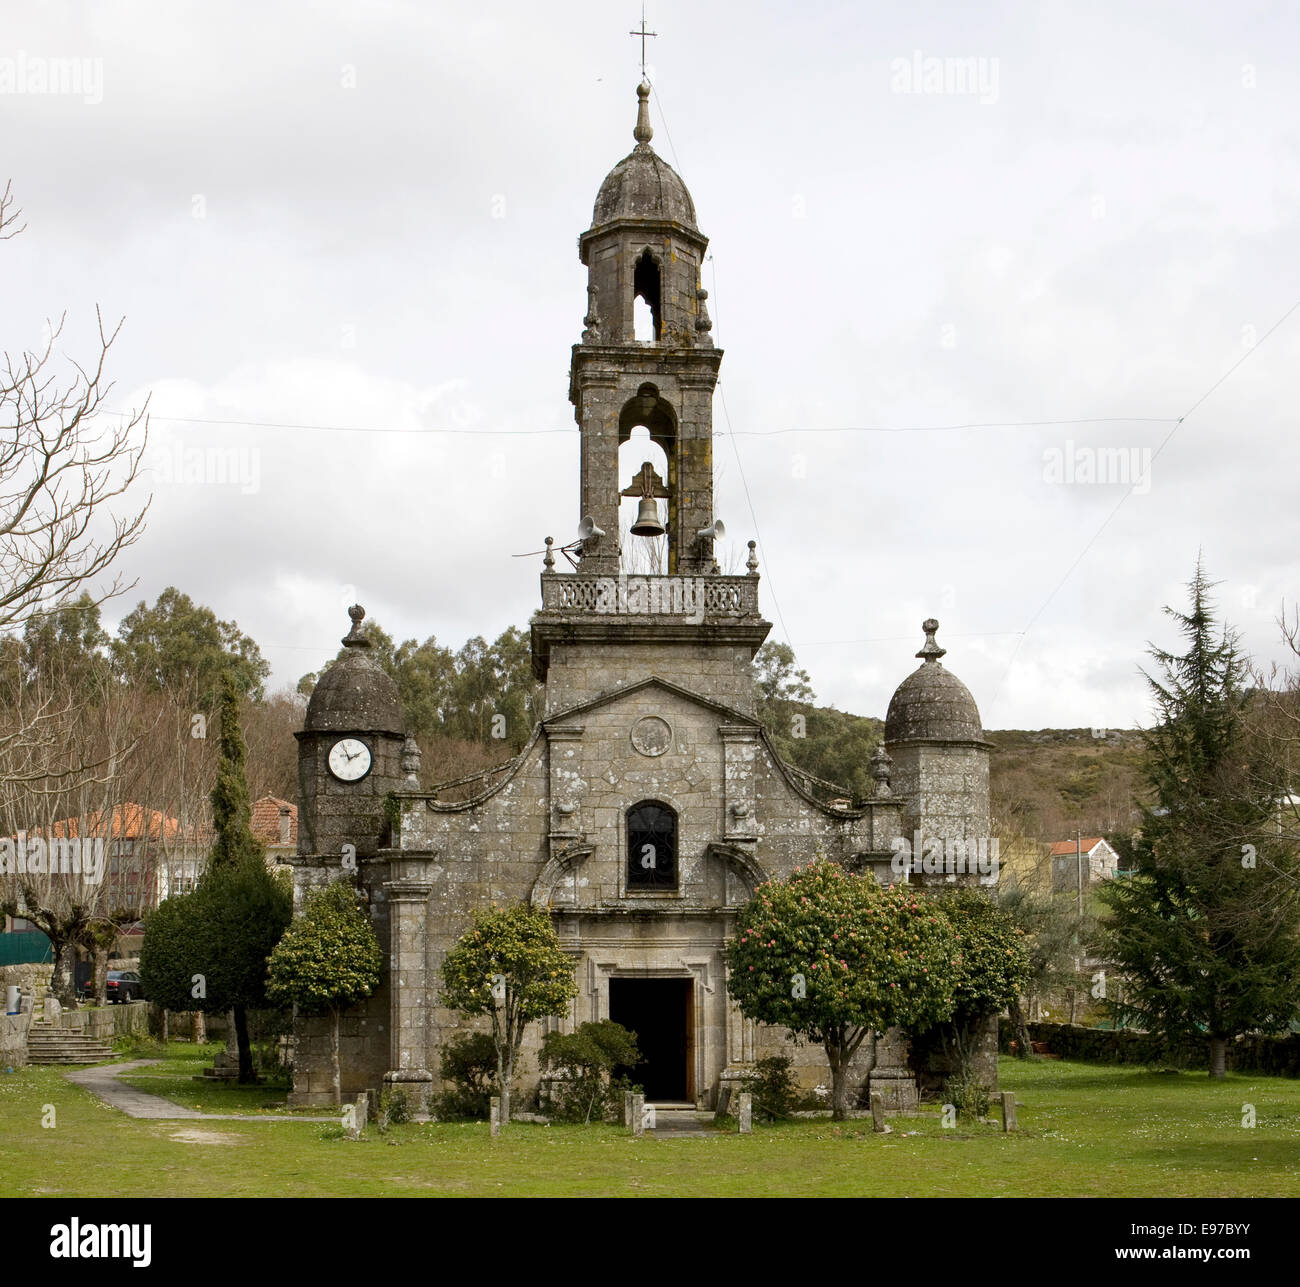 Old church in Galicia, Spain - Stock Image